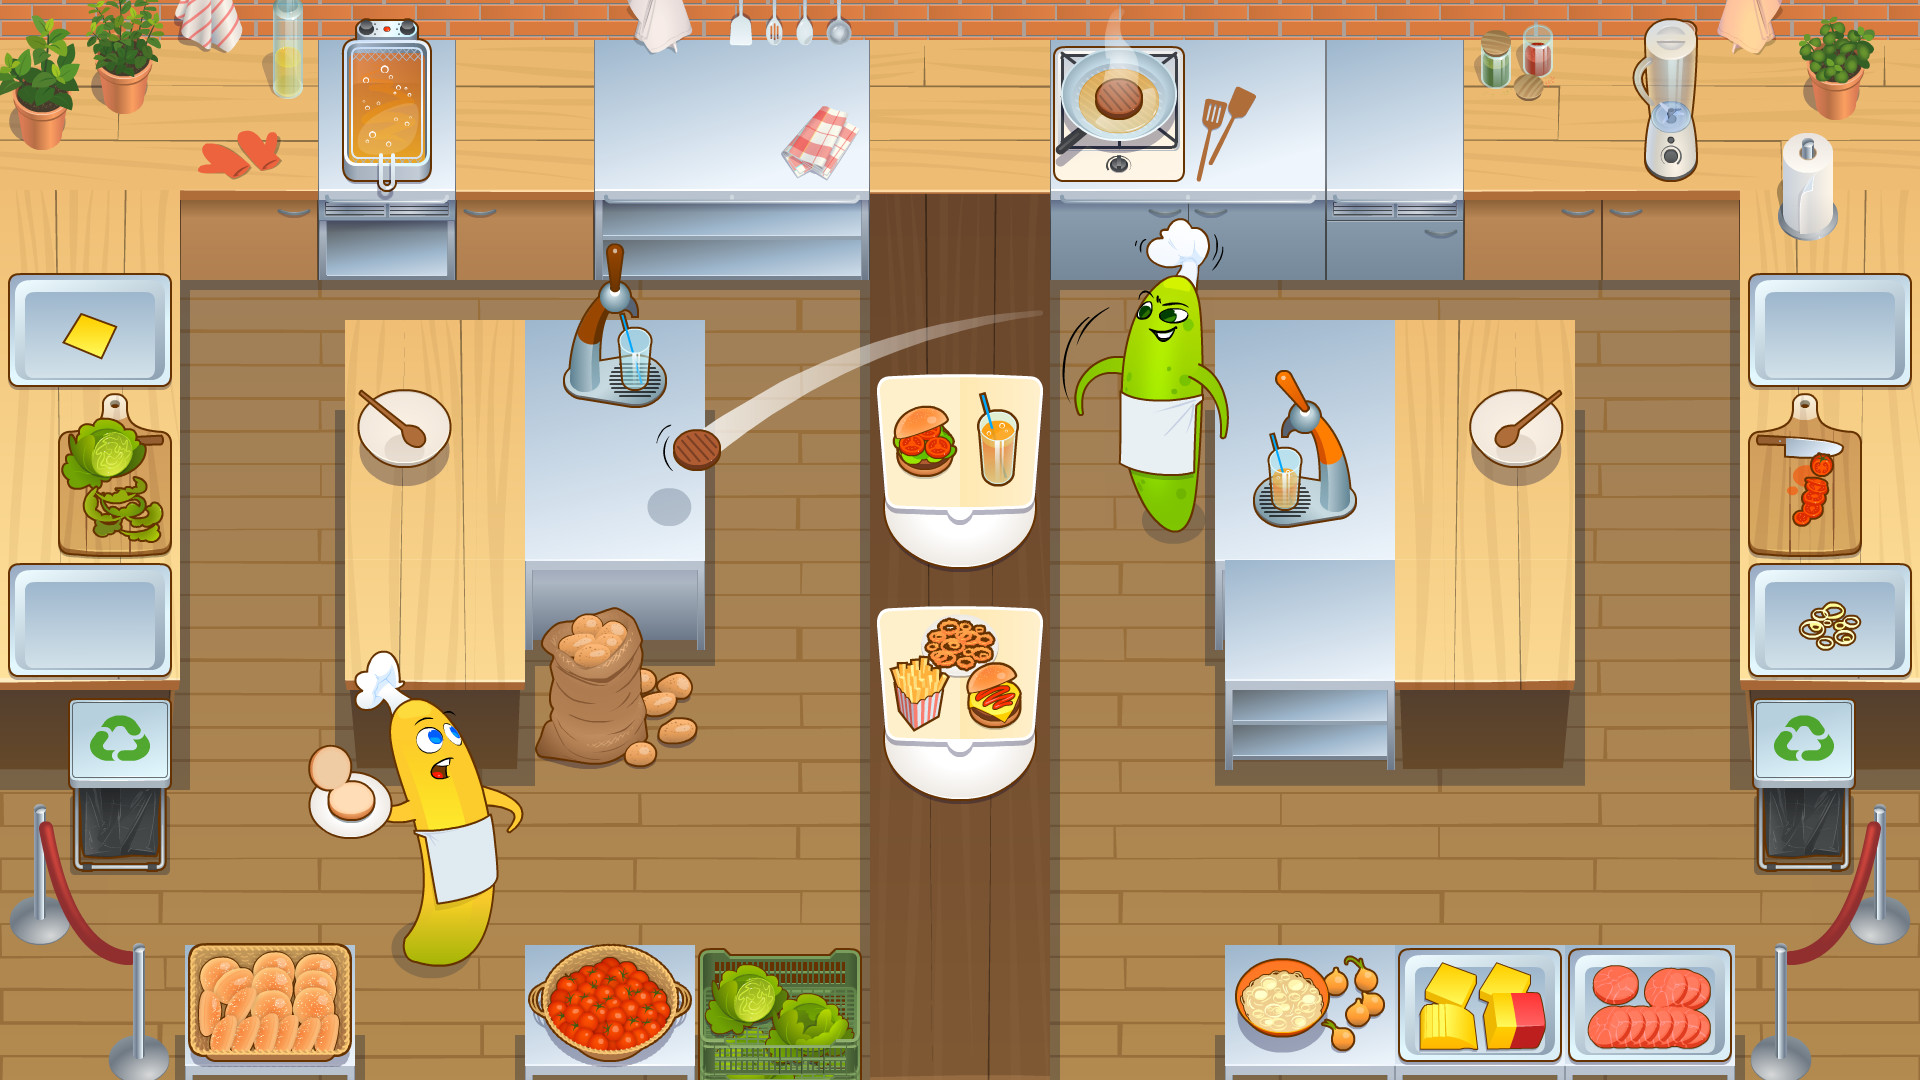 An Image from Let's Cook Together